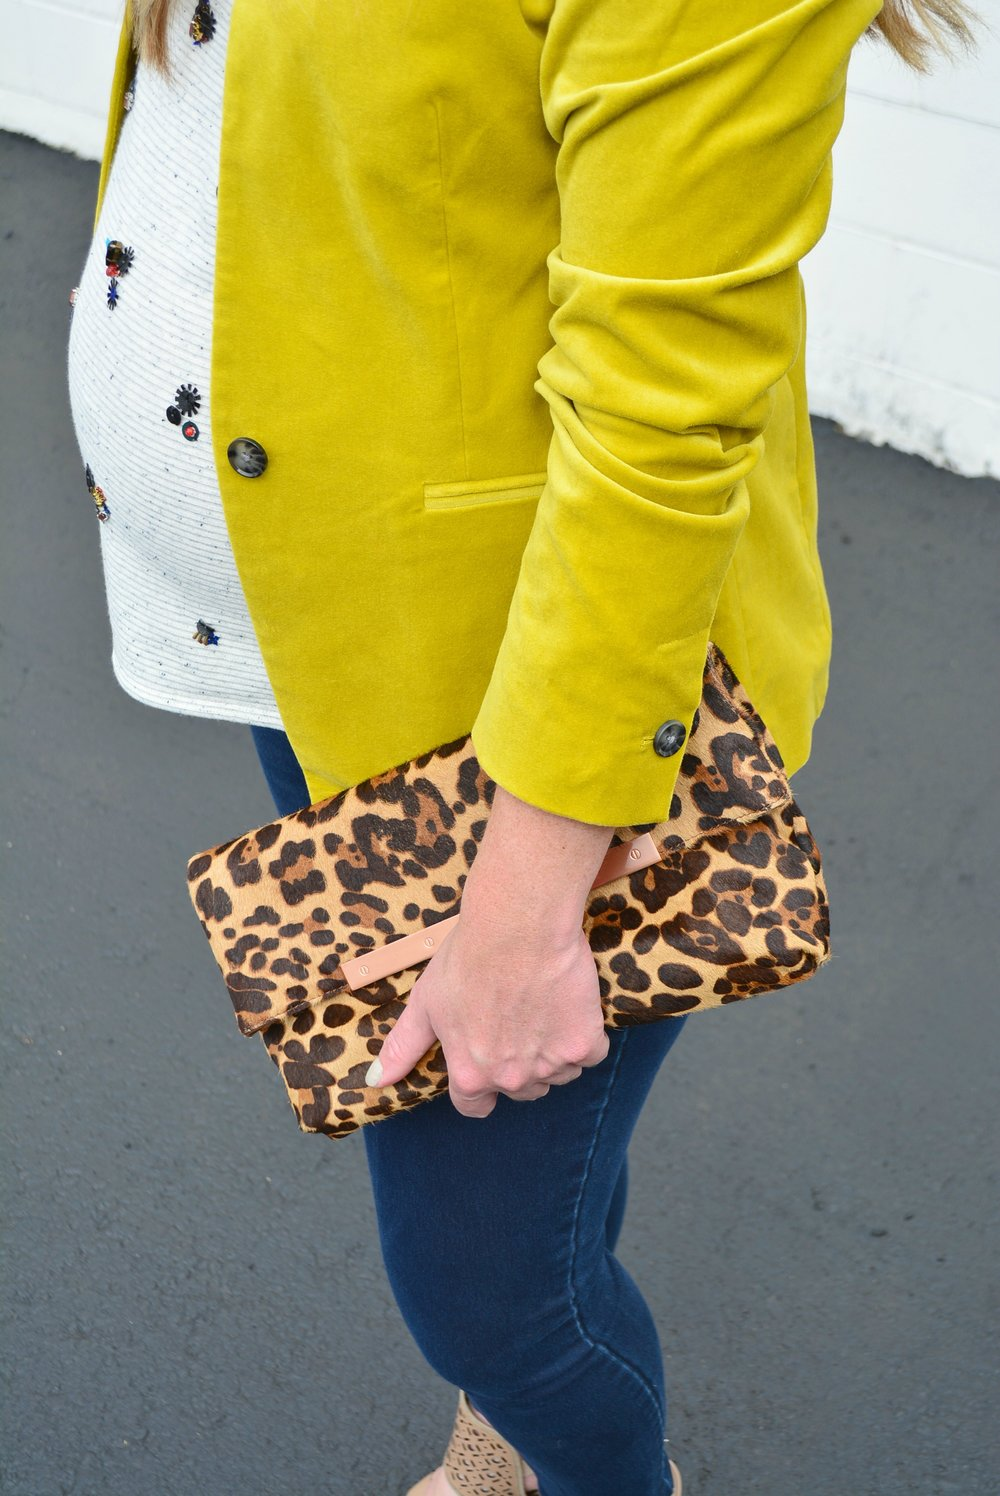 Banana Republic citron velvet jacket and embelished top for a great fall outfit